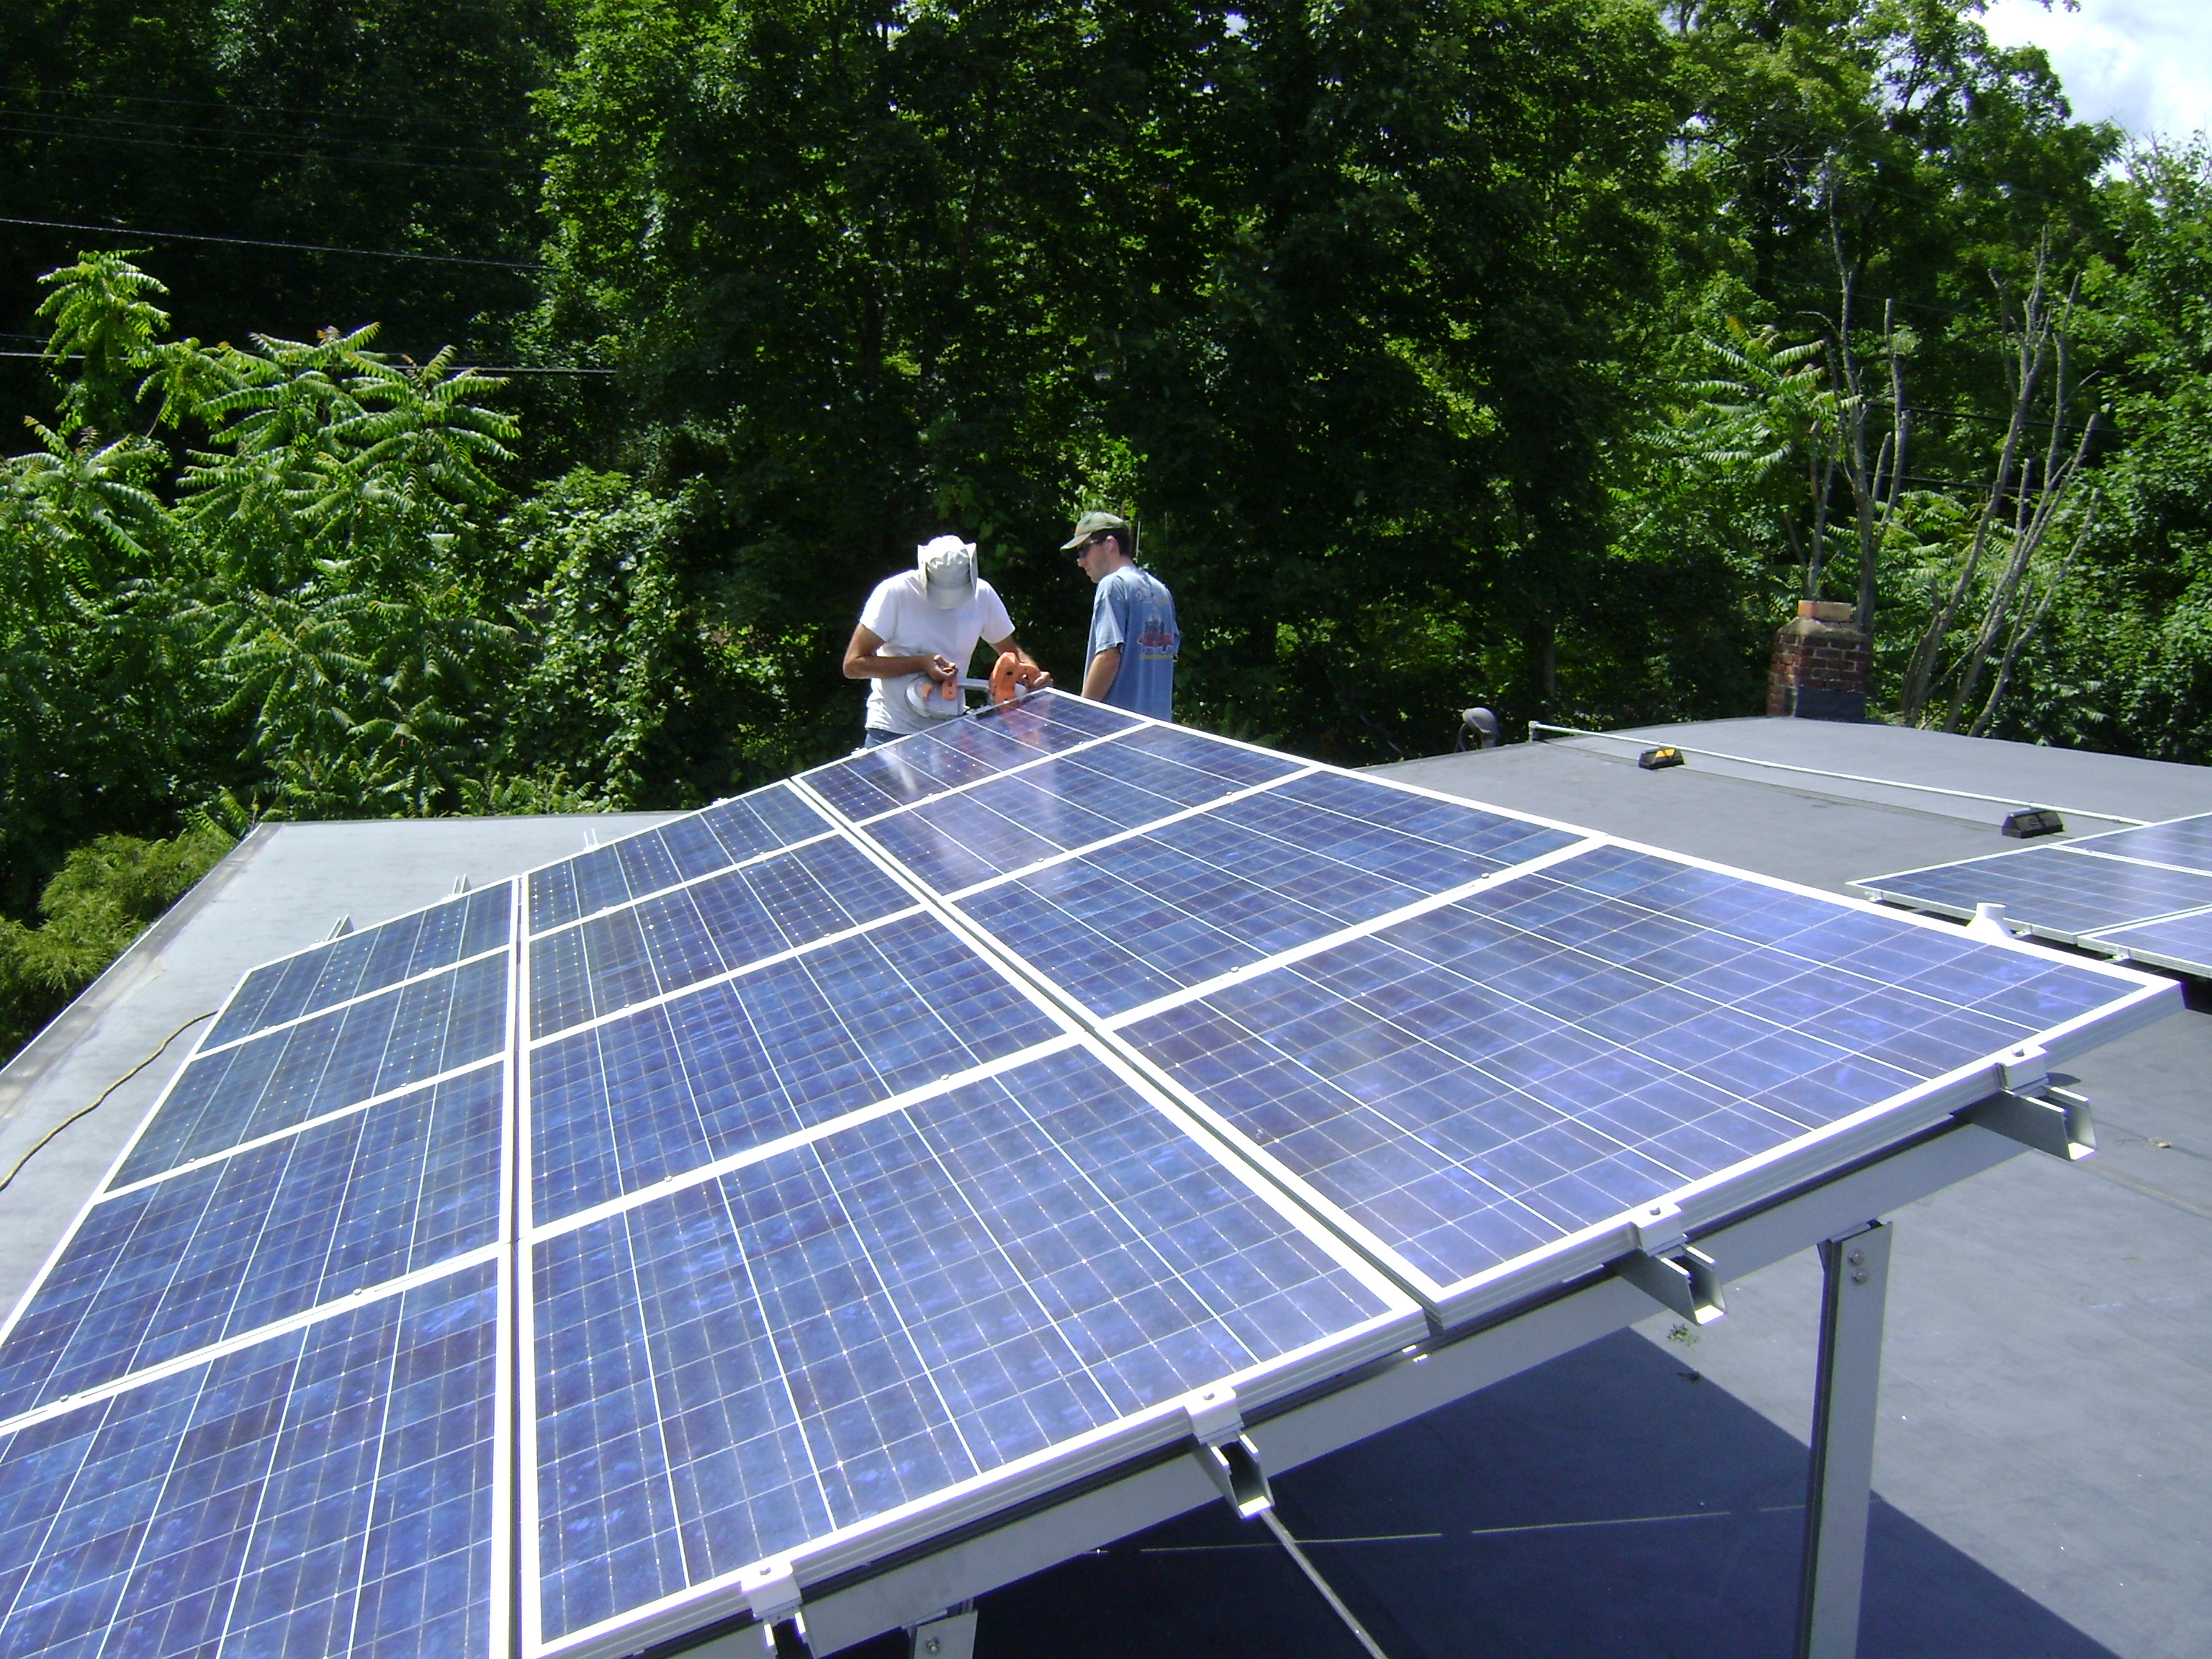 File:Rooftop Photovoltaic Array.jpg - Wikimedia Commons